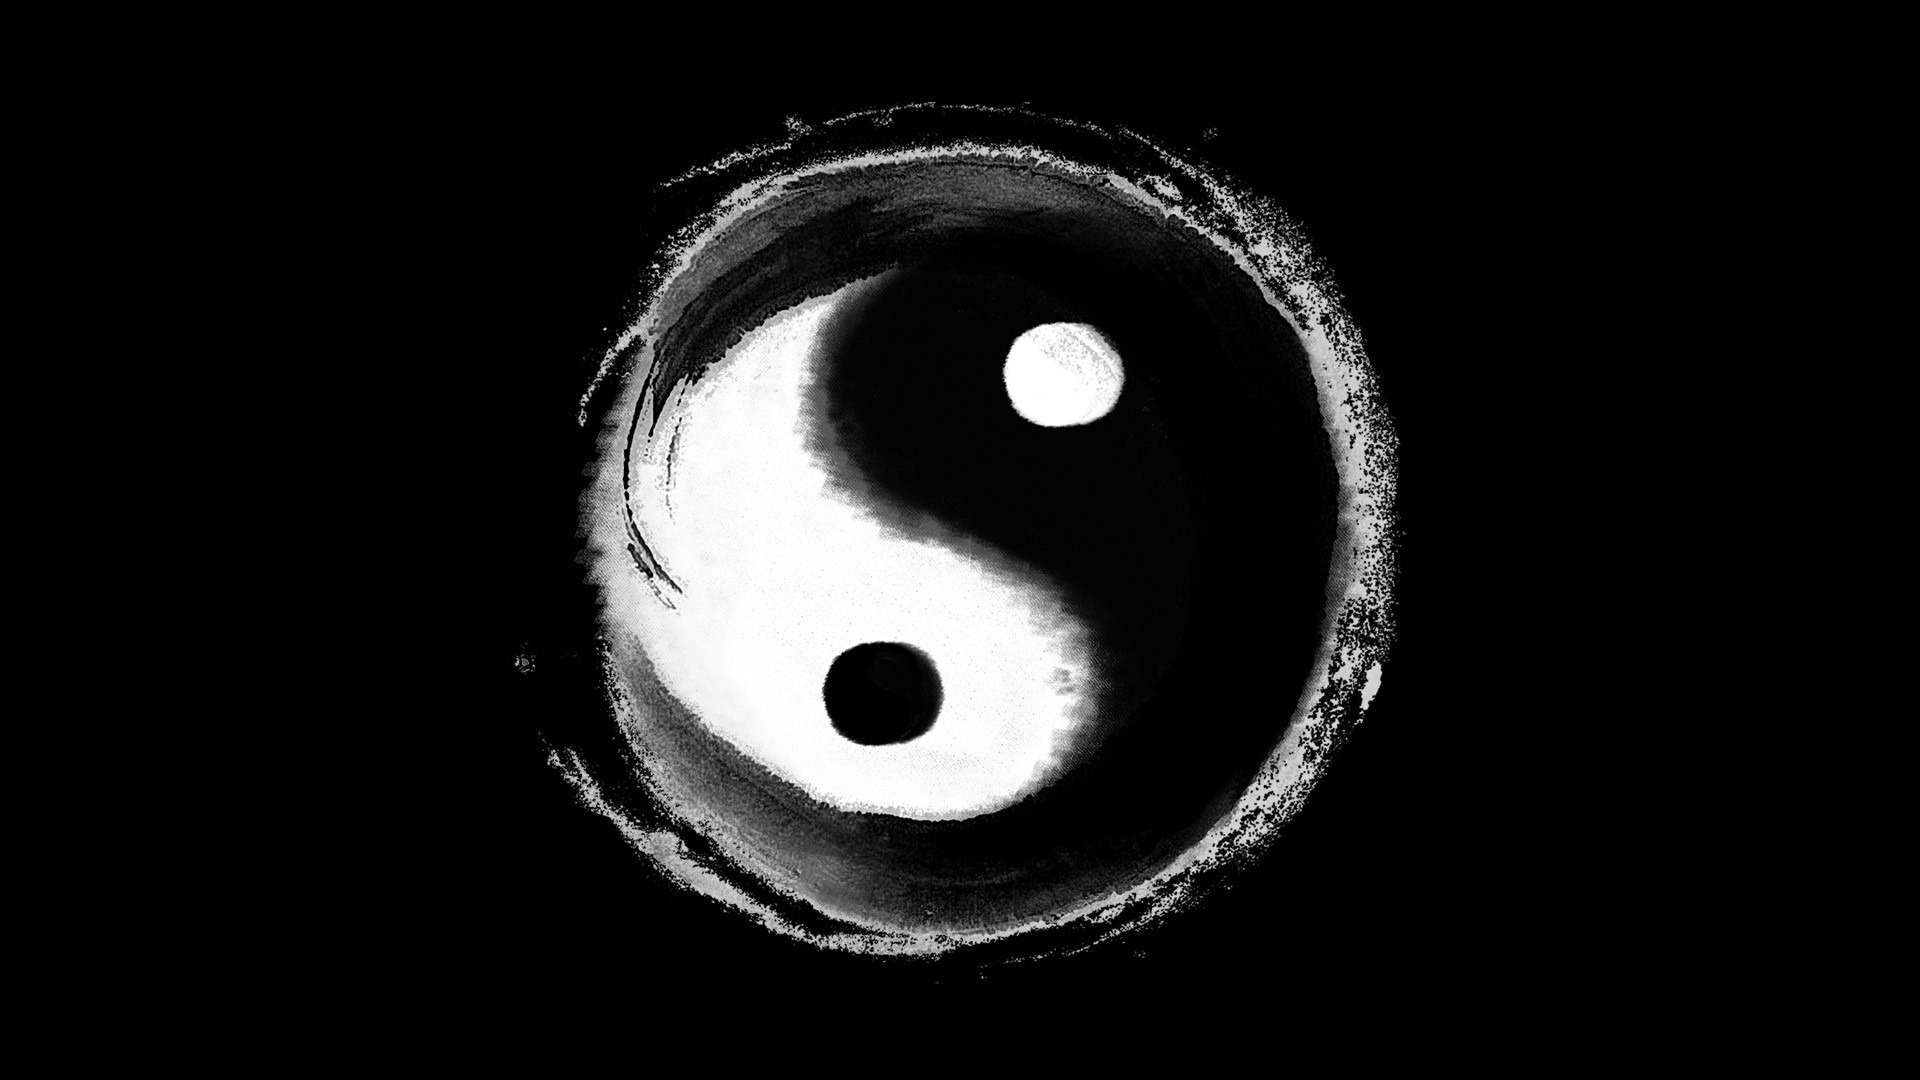 yin yang wallpaper HD  wallpaper Wallpaper Full Hd  X  Smartphone Yin Yang x  1920x1080